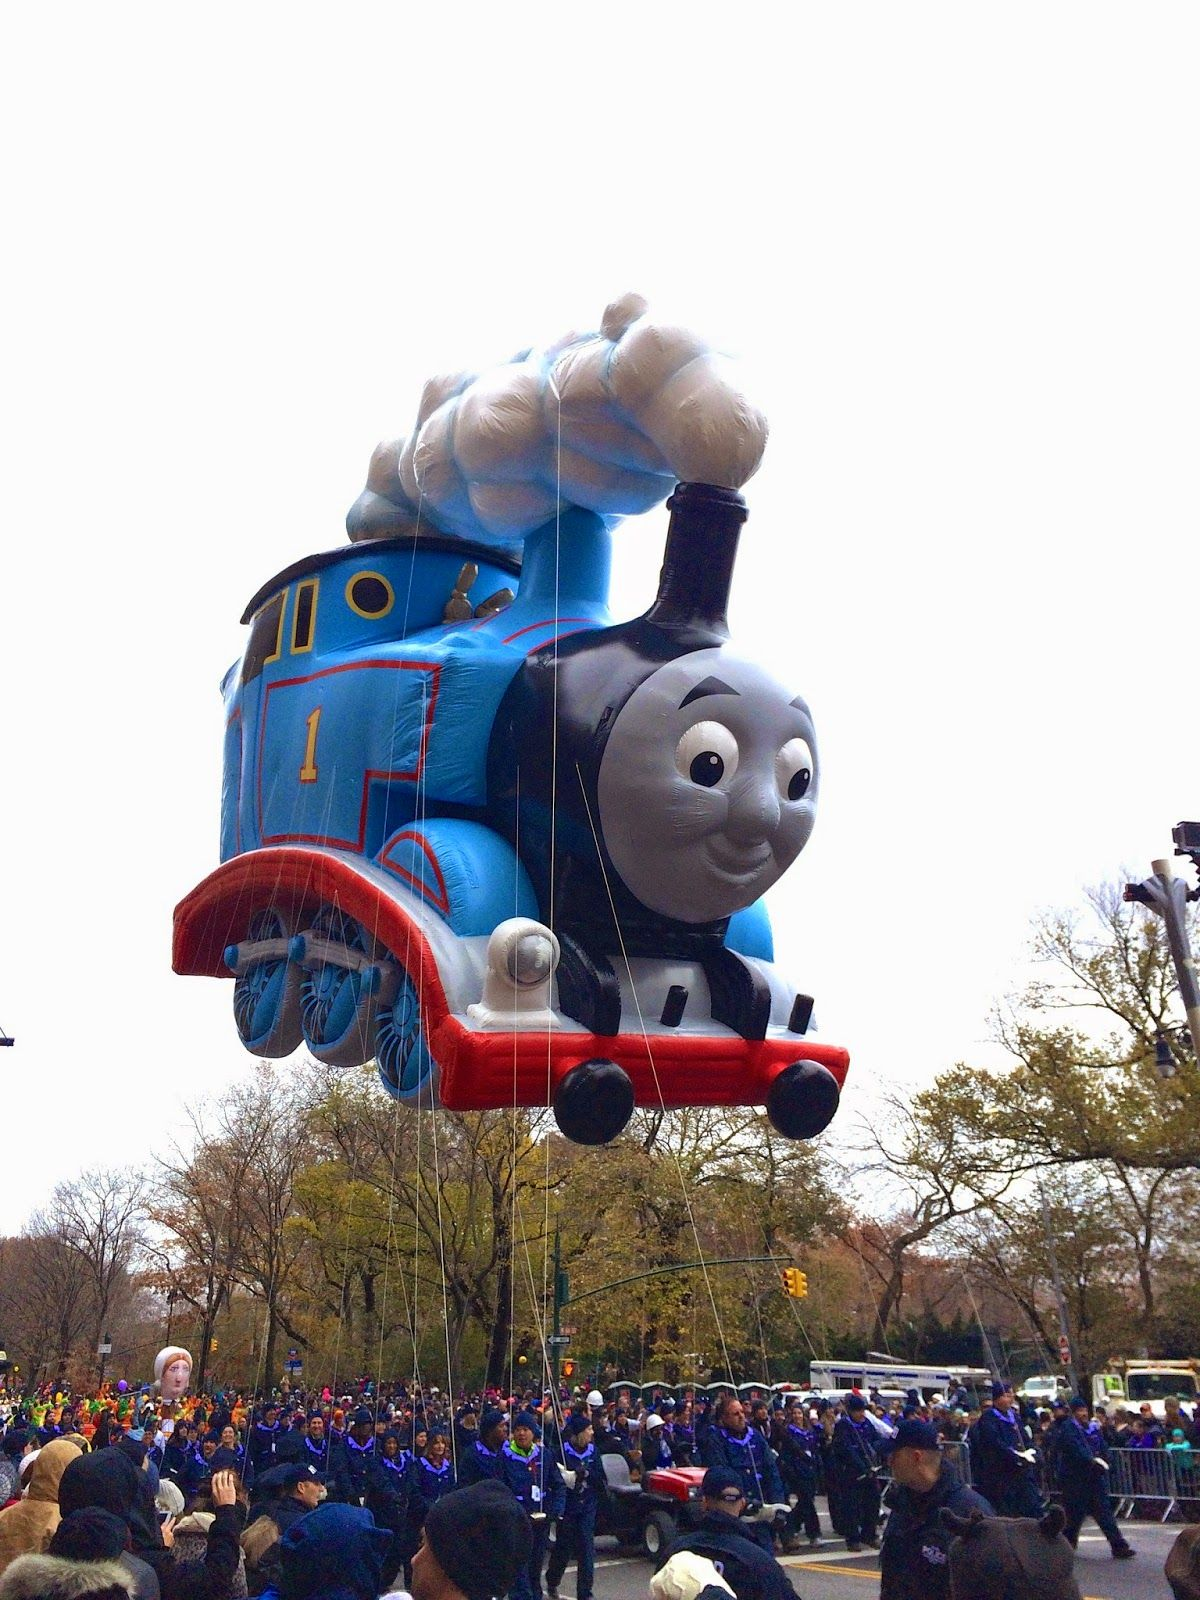 Thomas The Tank Engine At The 88th Annual Macy S Thanksgiving Day Parade In New York Ci Thanksgiving Day Parade Thanksgiving Day Macy S Thanksgiving Day Parade